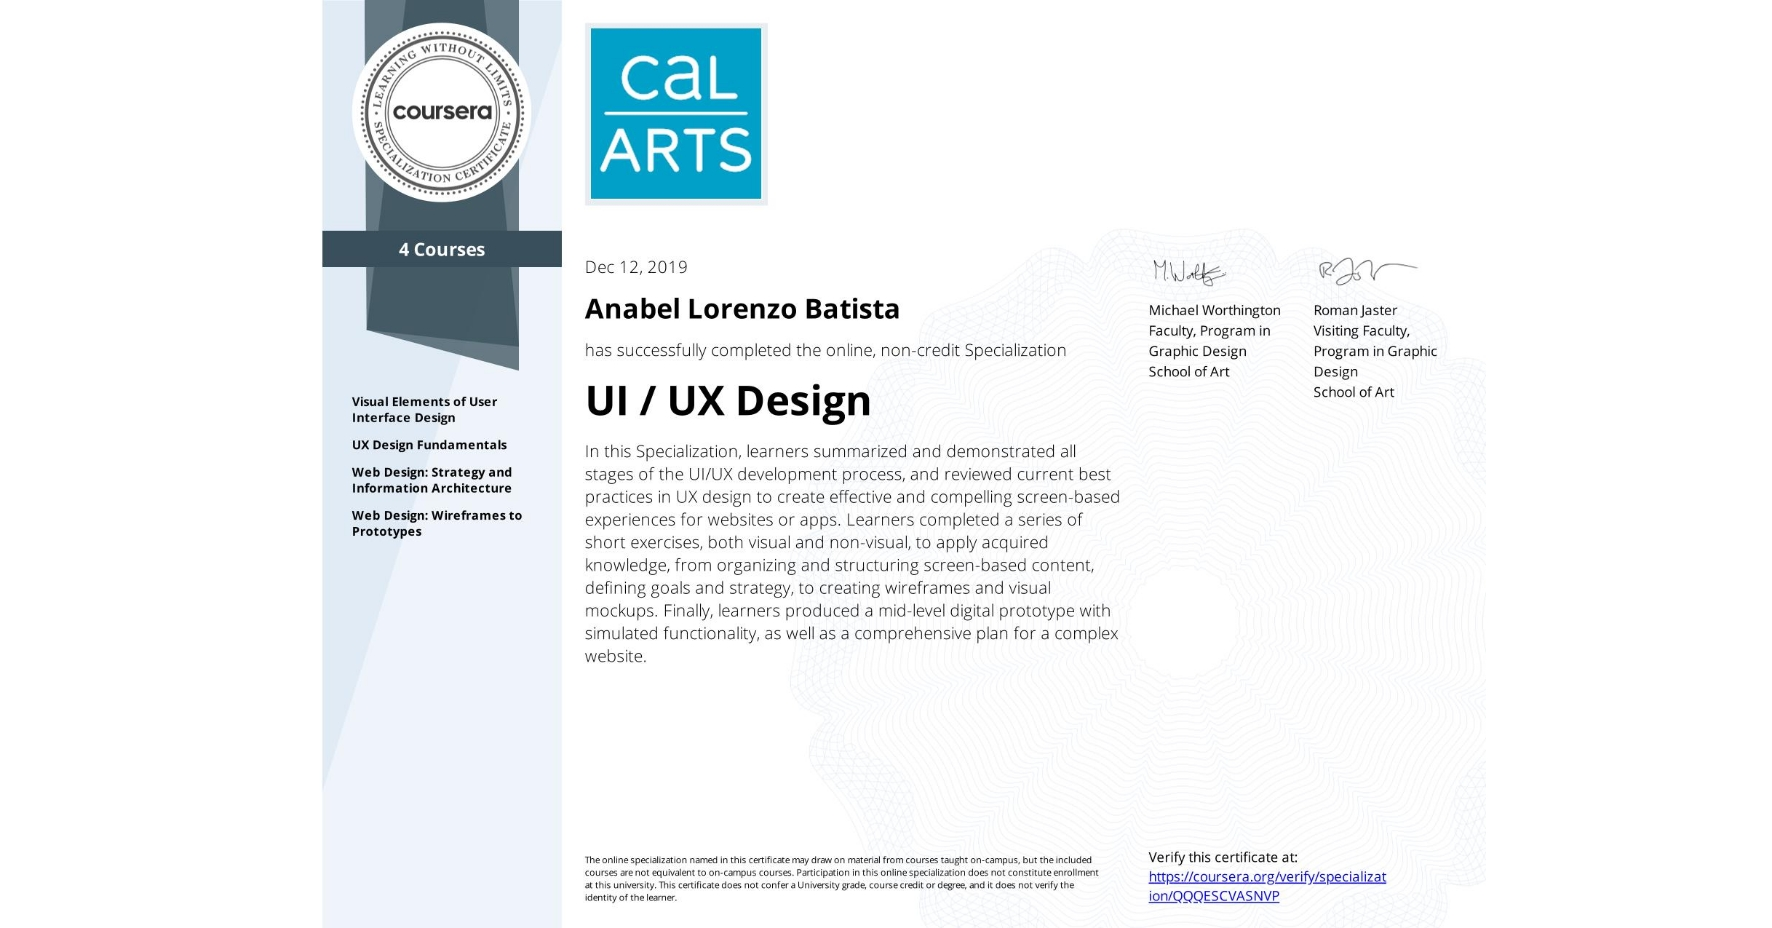 View certificate for Anabel Lorenzo Batista, UI / UX Design, offered through Coursera. In this Specialization, learners summarized and demonstrated all stages of the UI/UX development process, and reviewed current best practices in UX design to create effective and compelling screen-based experiences for websites or apps. Learners completed a series of short exercises, both visual and non-visual, to apply acquired knowledge, from organizing and structuring screen-based content, defining goals and strategy, to creating wireframes and visual mockups. Finally, learners produced a mid-level digital prototype with simulated functionality, as well as a comprehensive plan for a complex website.